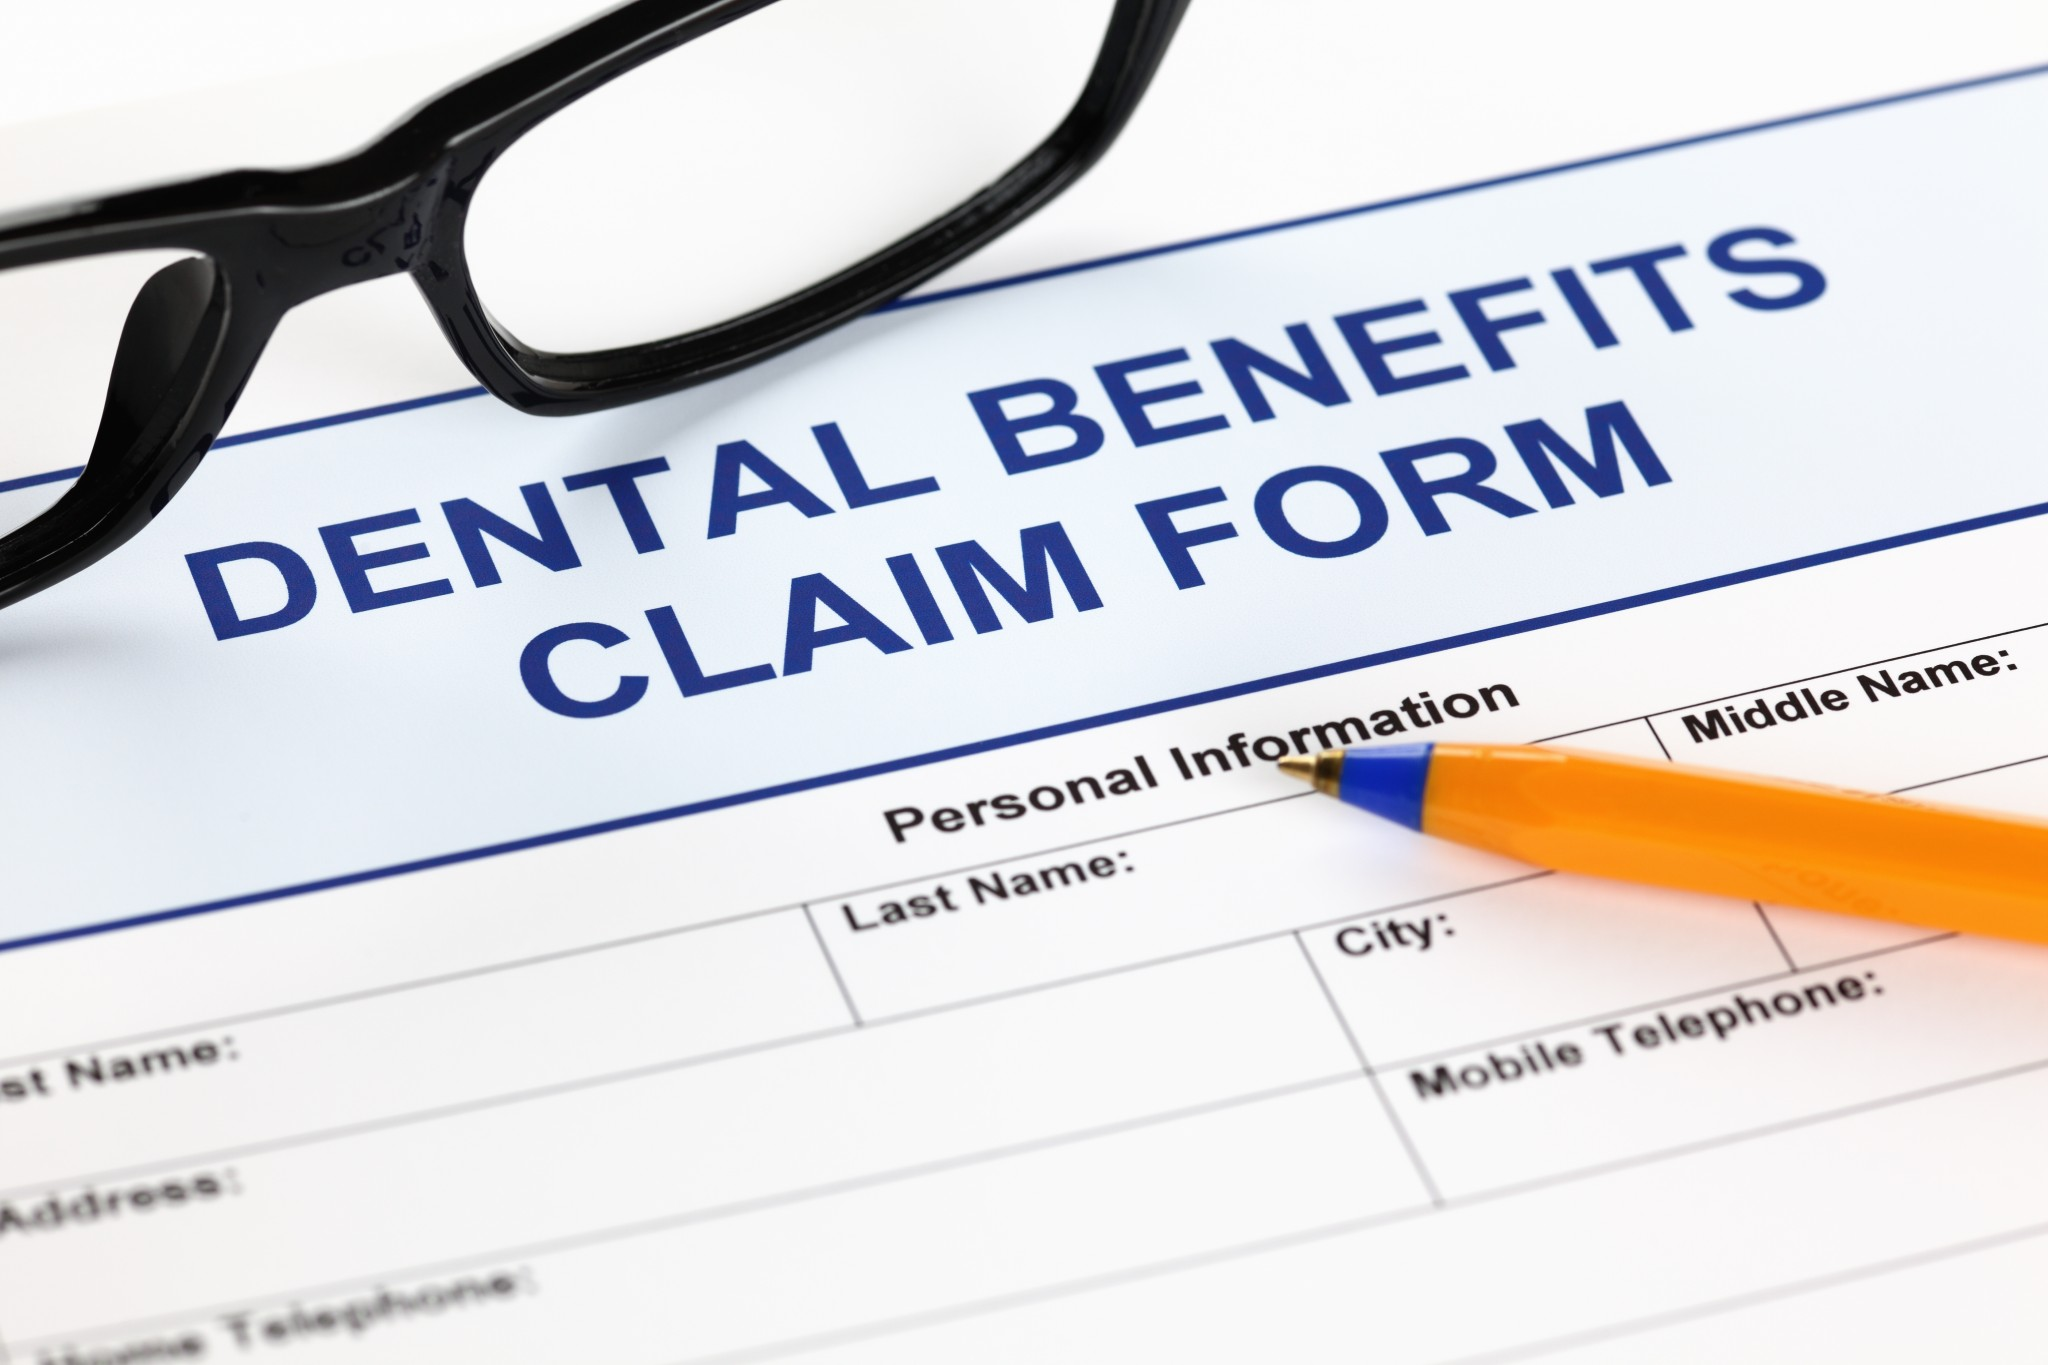 Dental-Benefits